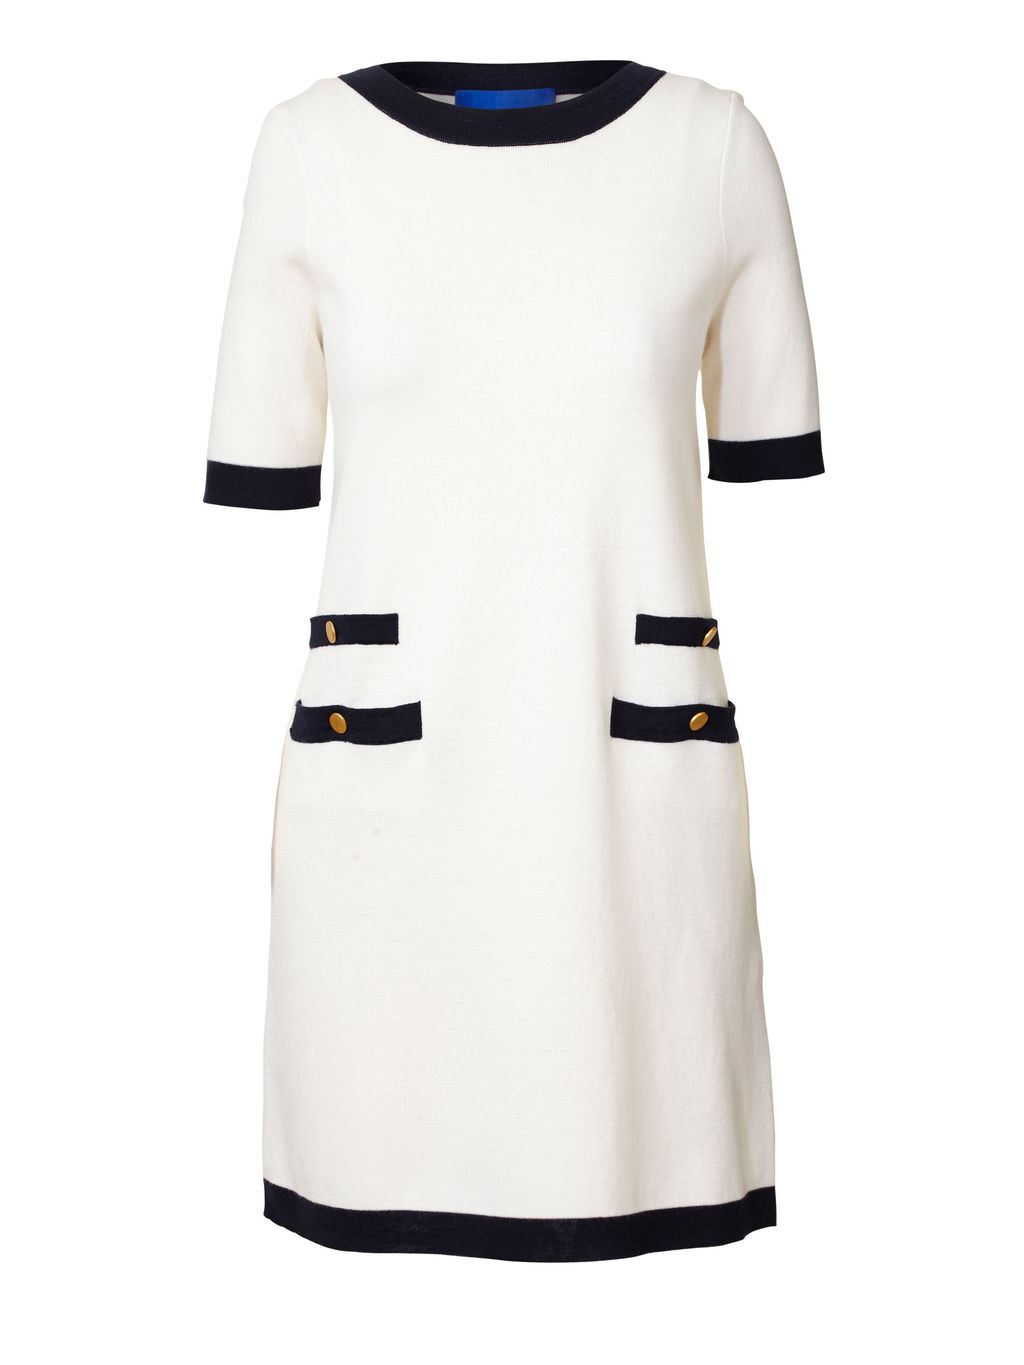 Milano Wool Parisian Dress, Cream - style: shift; pattern: plain; predominant colour: ivory/cream; secondary colour: navy; length: just above the knee; fit: soft a-line; fibres: wool - 100%; neckline: crew; sleeve length: short sleeve; sleeve style: standard; pattern type: fabric; texture group: jersey - stretchy/drapey; occasions: creative work; season: s/s 2016